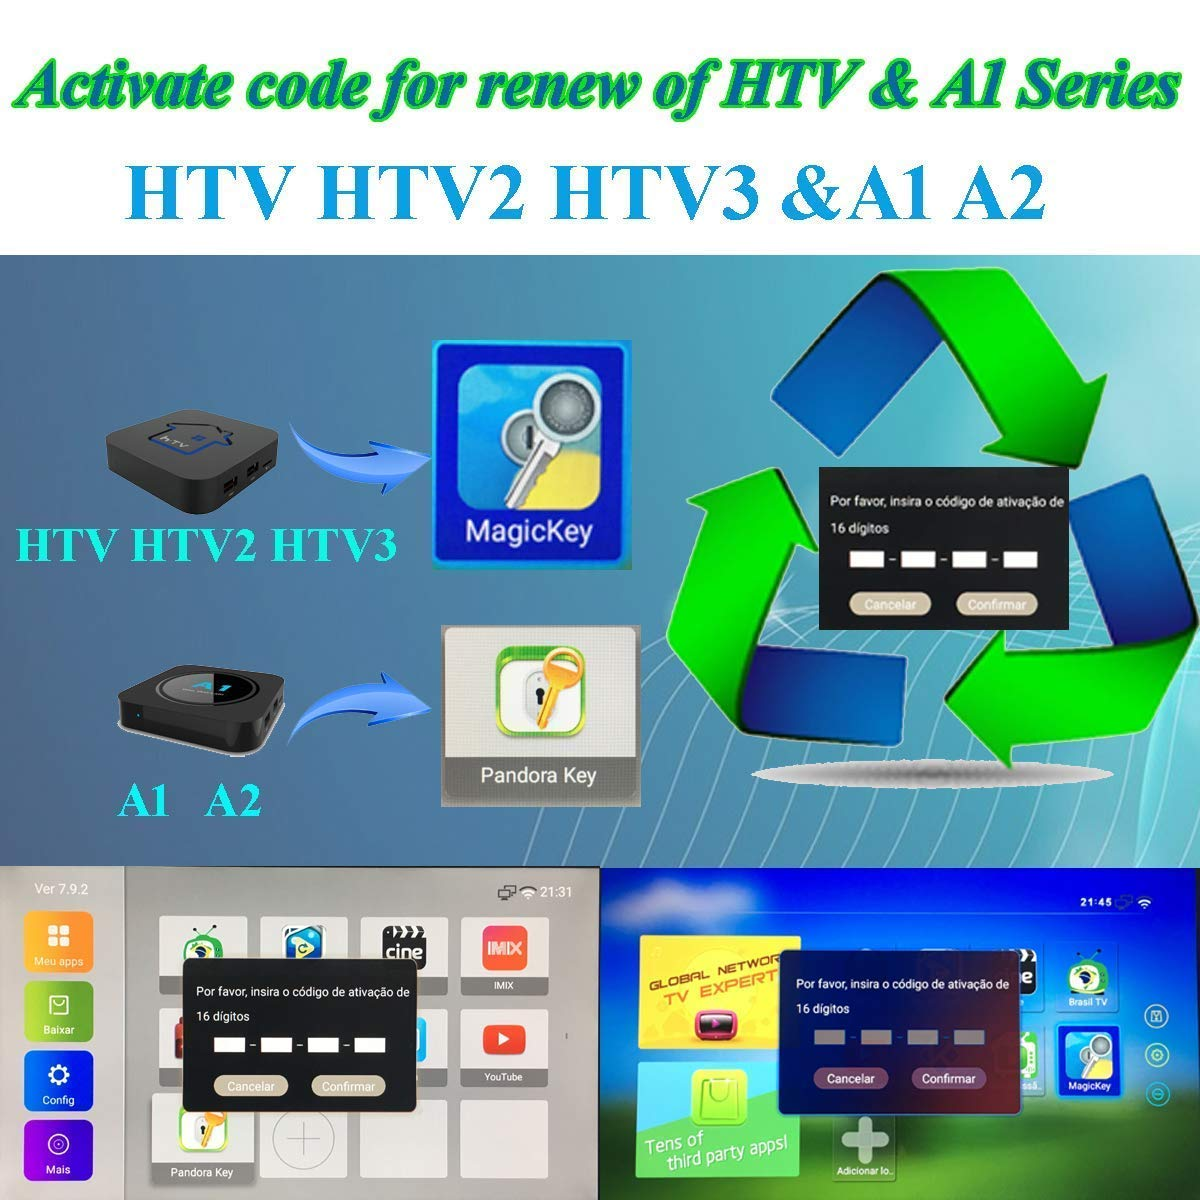 TV Box Brazil Code, Brazil TV Box Renew Code, A2 Renew Code,Brazil TV Box Renew Code, Activation Code for A1/A2/ HTV/IPTV 5/6,Subscription 16-Digit Renew Code,One Yea with Extra 1 Month subscrip by IPTV Brazil